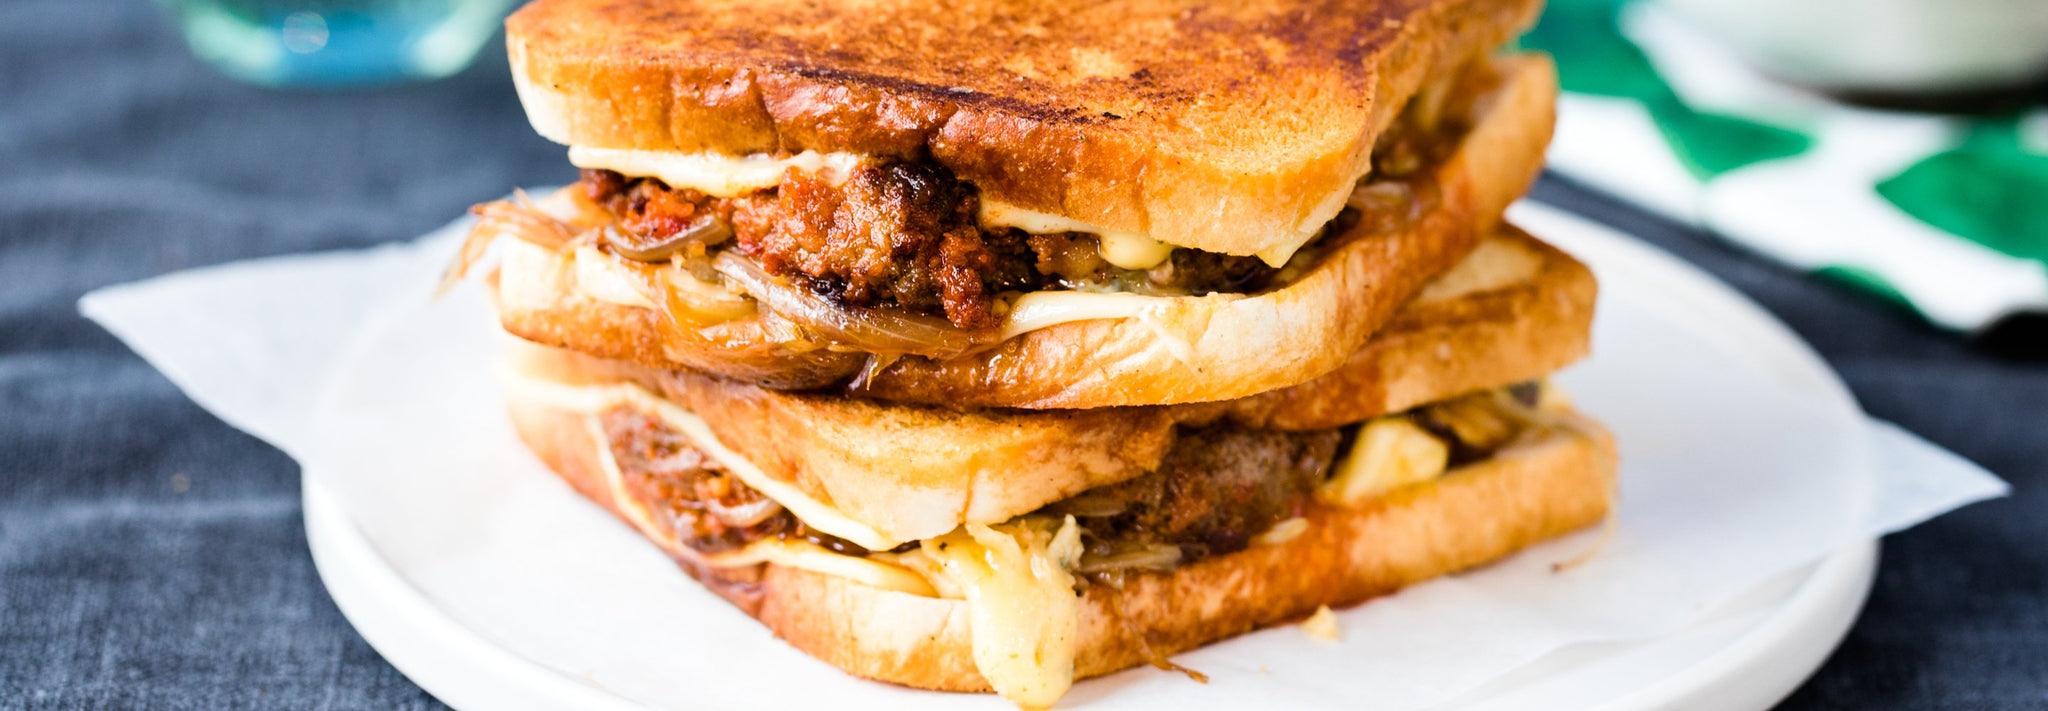 'Nduja Patty Melt